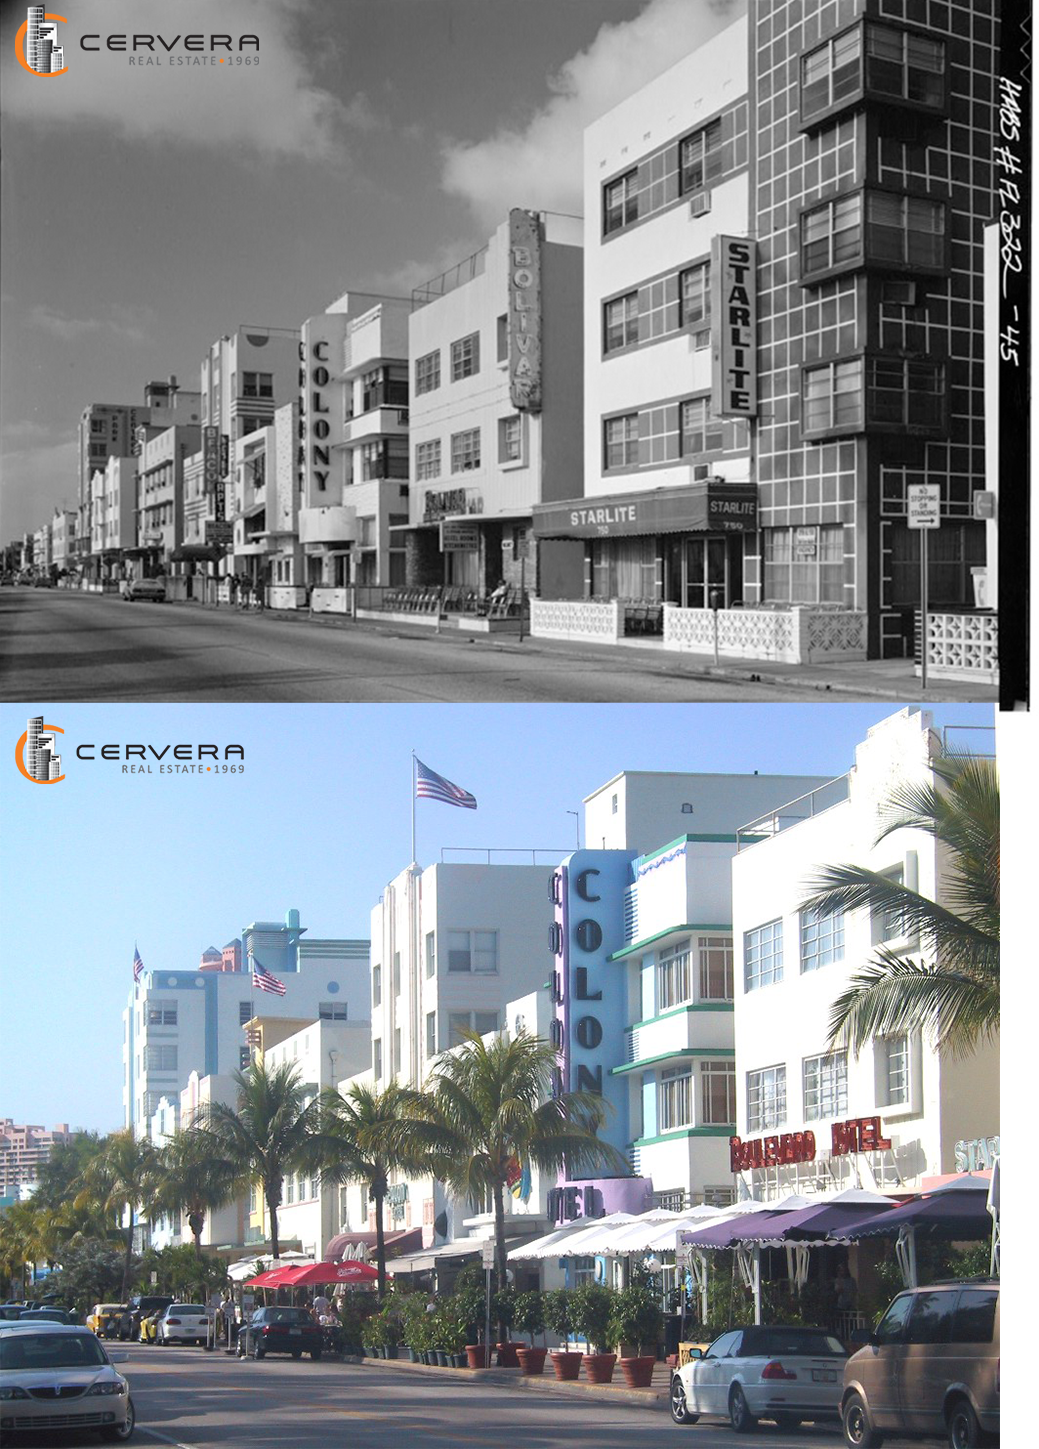 Then And Now This Is Oceandrive From 1980 To Tbt Miami Miamibeach Throwbackthursday Cerverare Southbeach